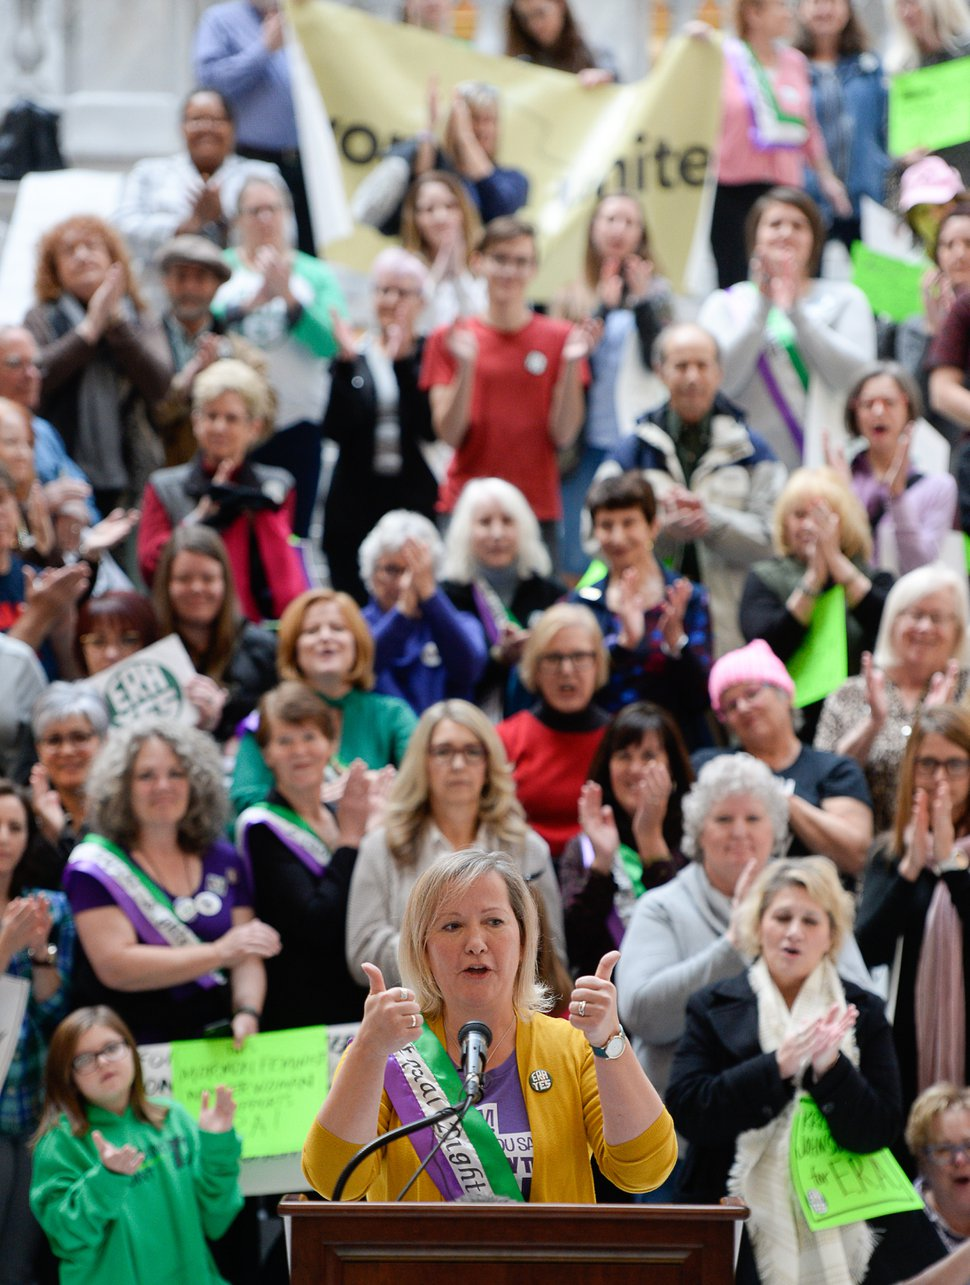 (Francisco Kjolseth | The Salt Lake Tribune) Amy Rich, co-founder of Fair Utah, joins local supporters of the Equal Rights Amendment as they rally at the Utah Capitol on Tuesday, Dec. 3, 2019, to encourage Utah to ratify the ERA.